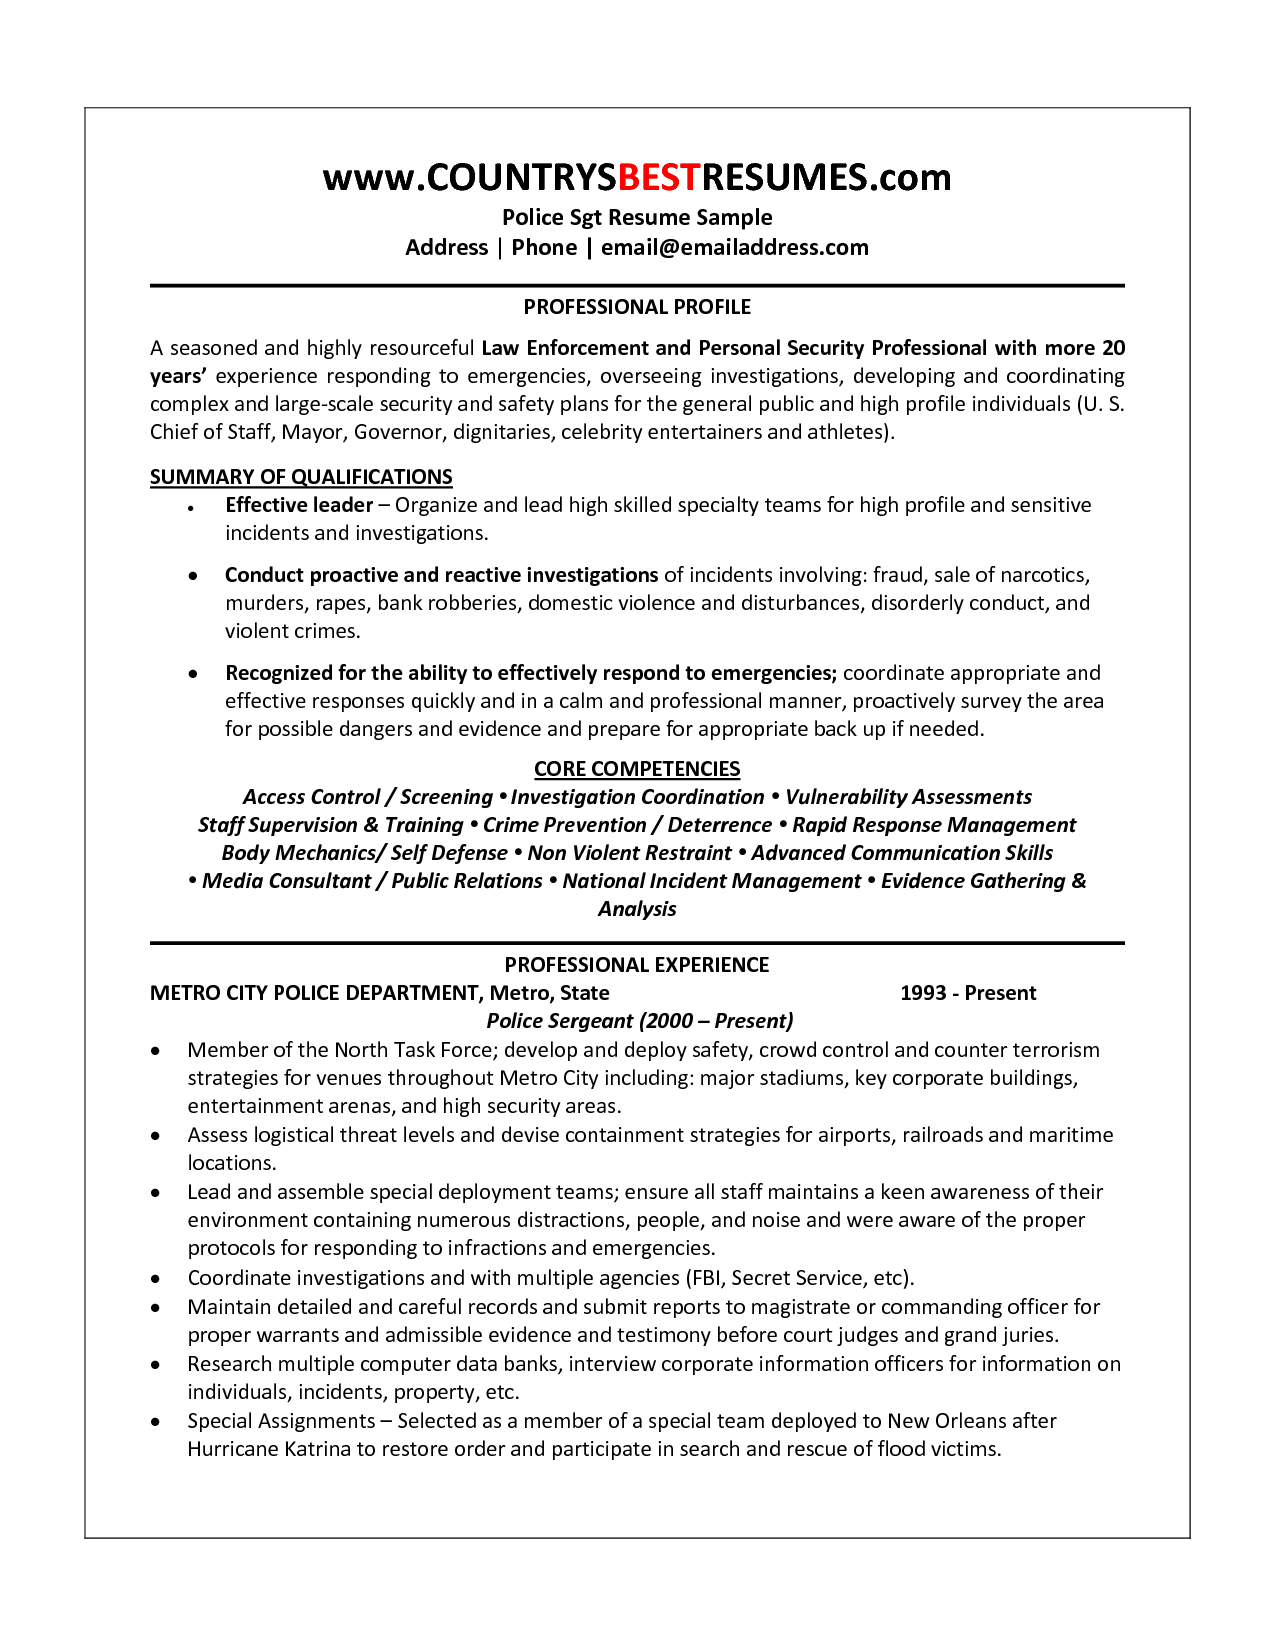 Police Officer Resume Examples Police Officer Resume Sample Http Resumecareer